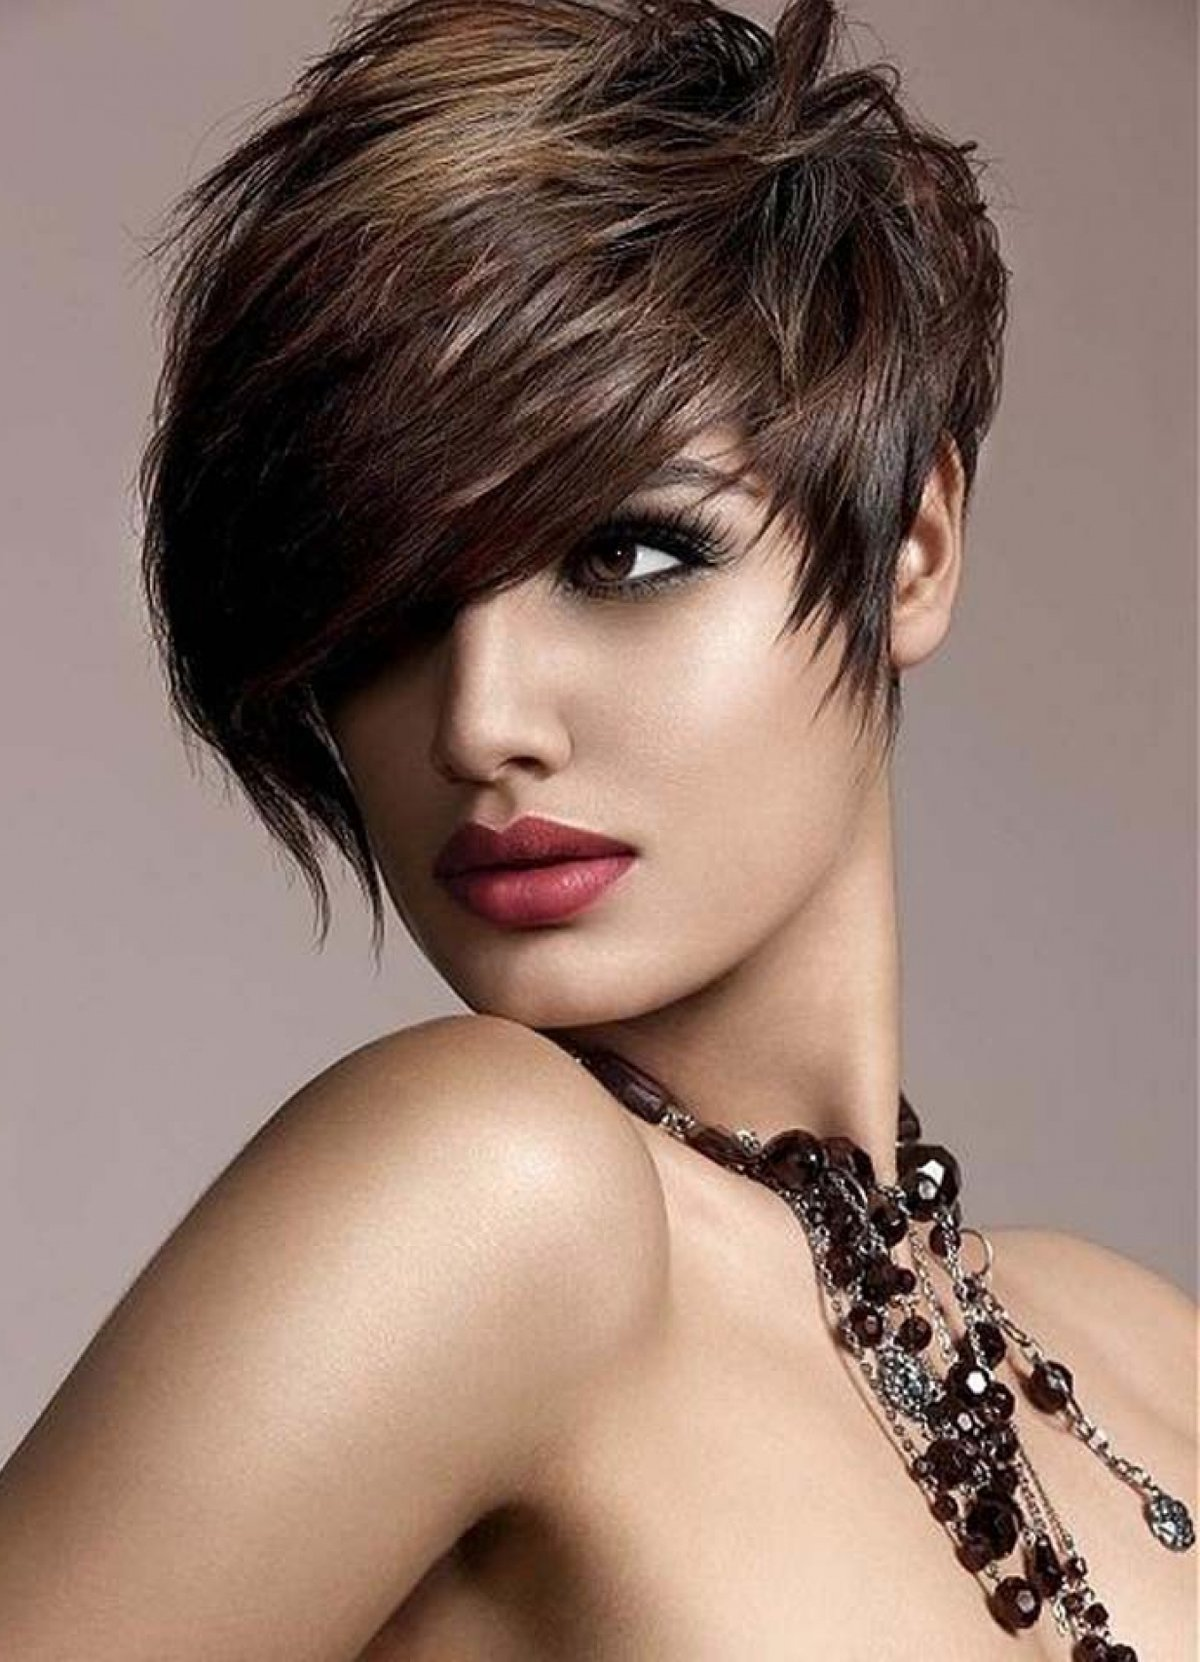 pictures-of-girls-haircuts-lovly-fat-body-for-fucking